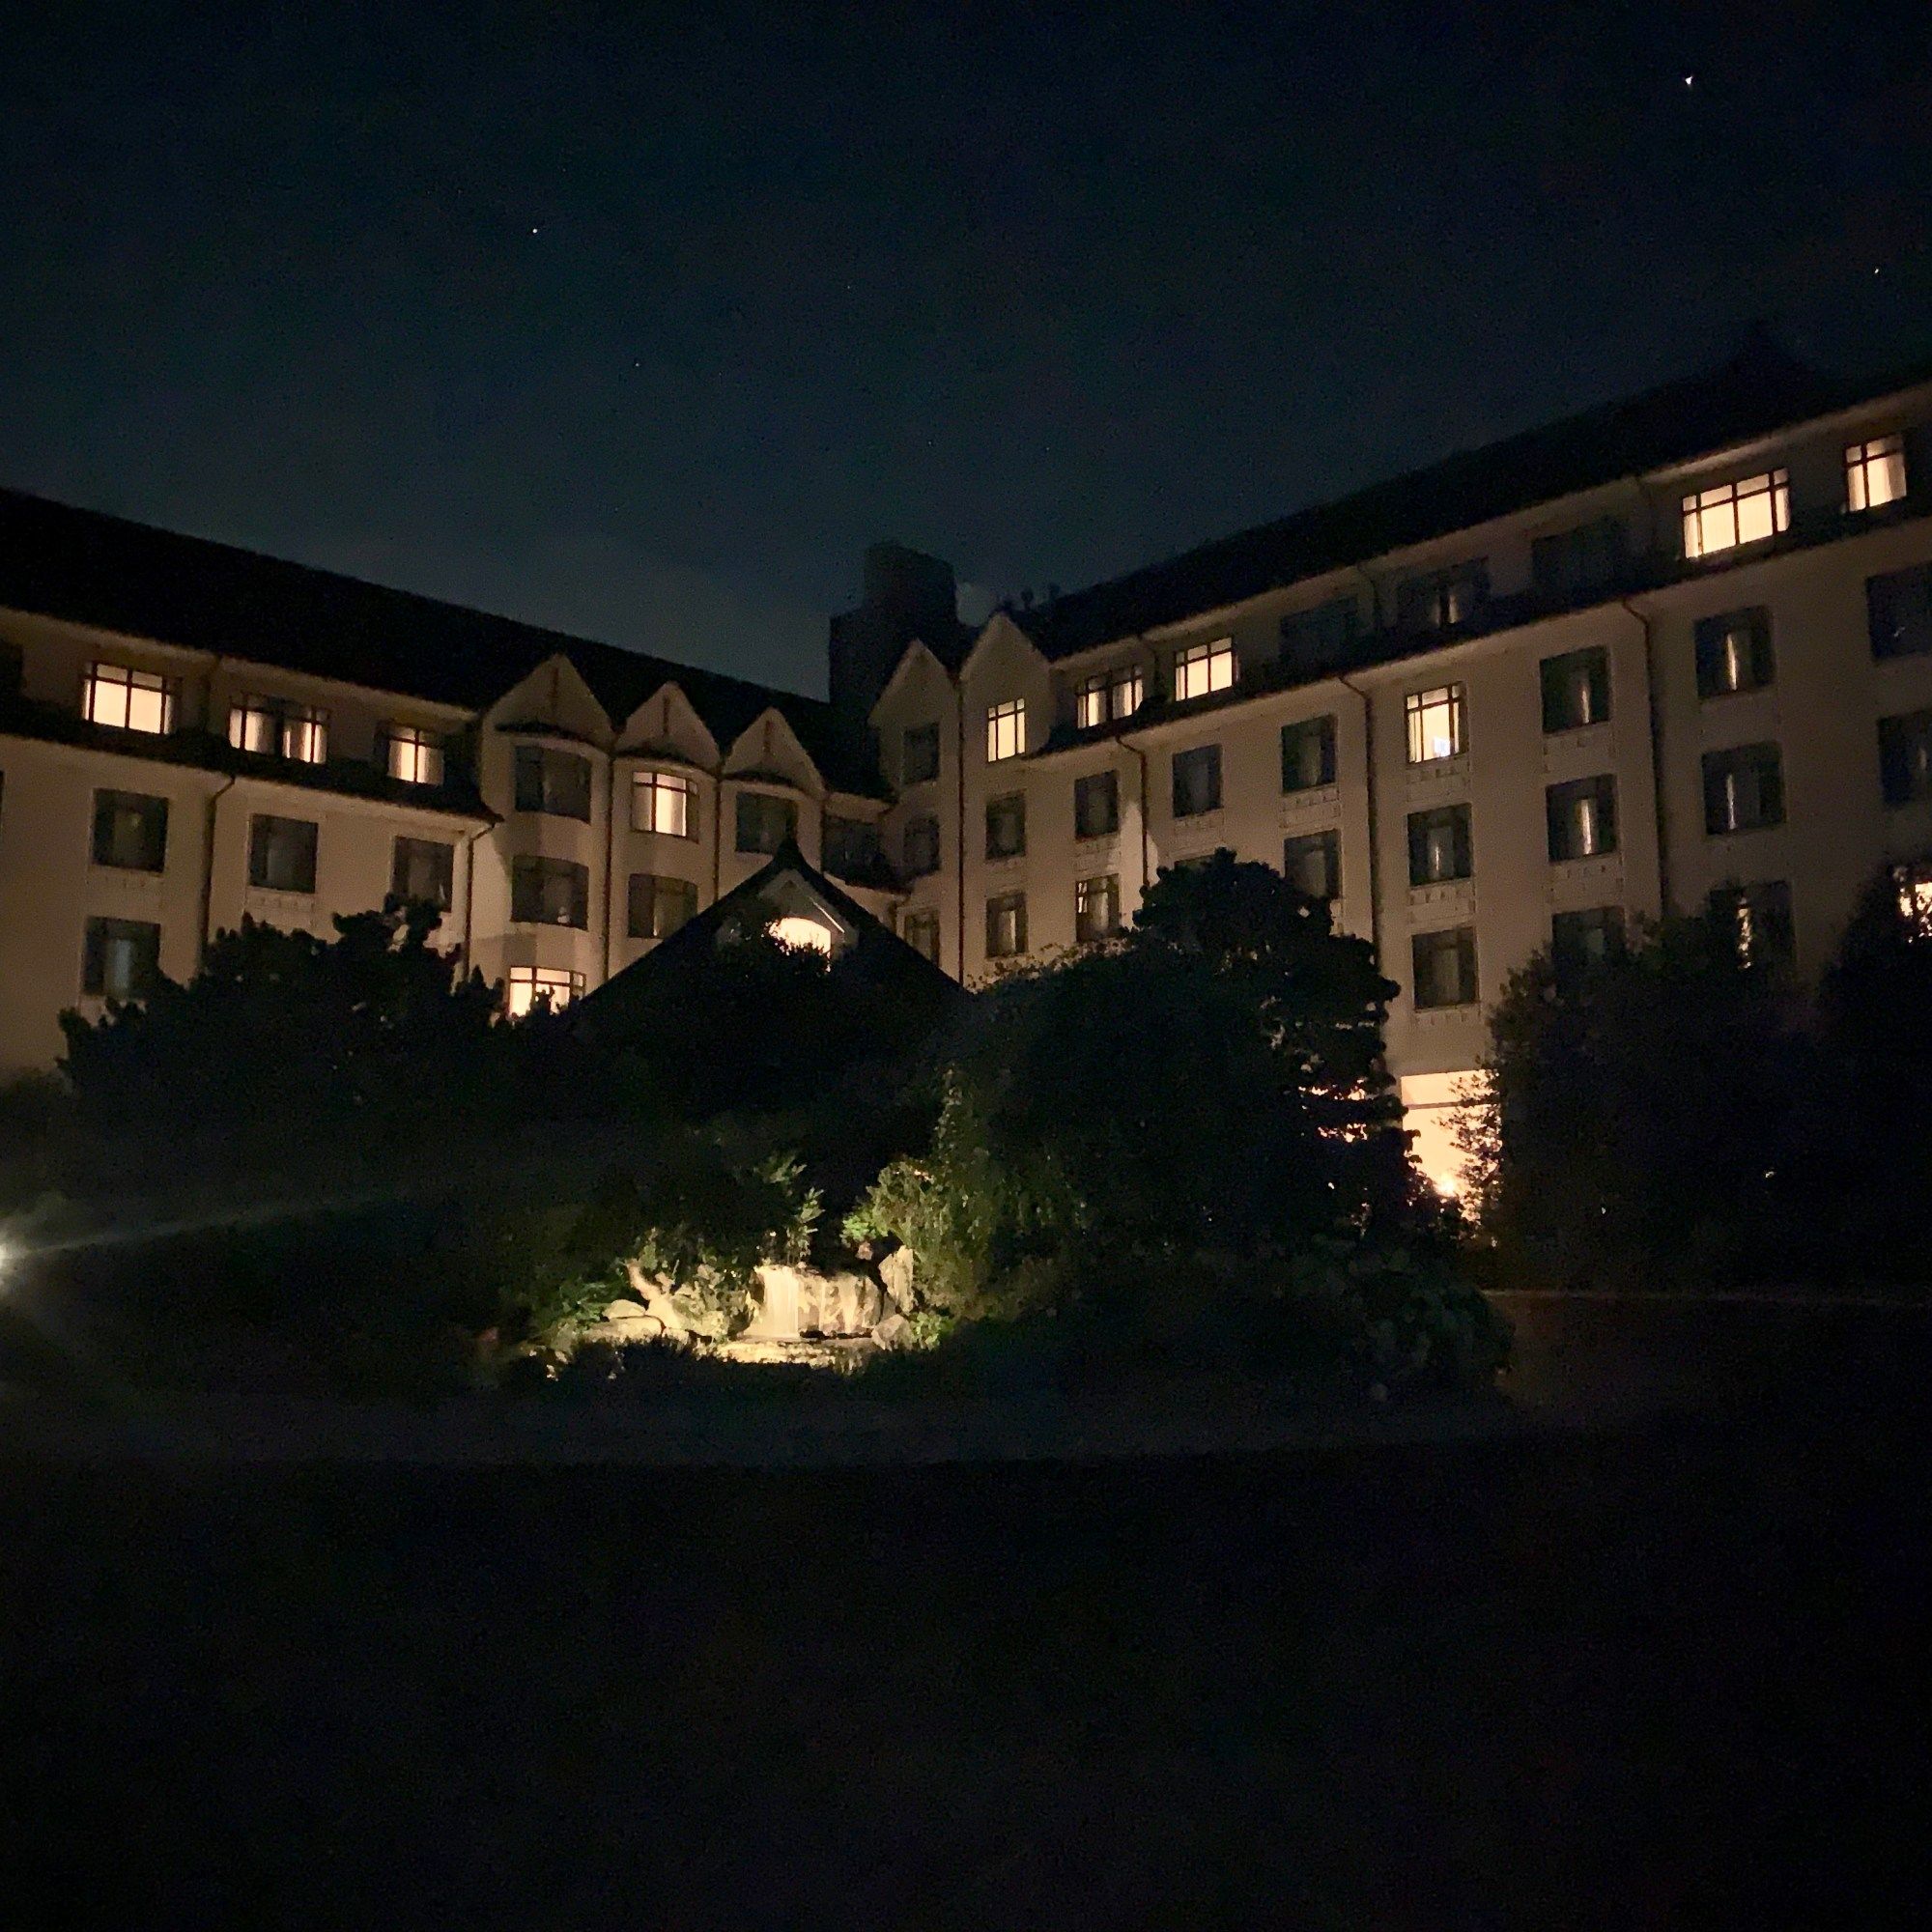 Inn at Biltmore at Night